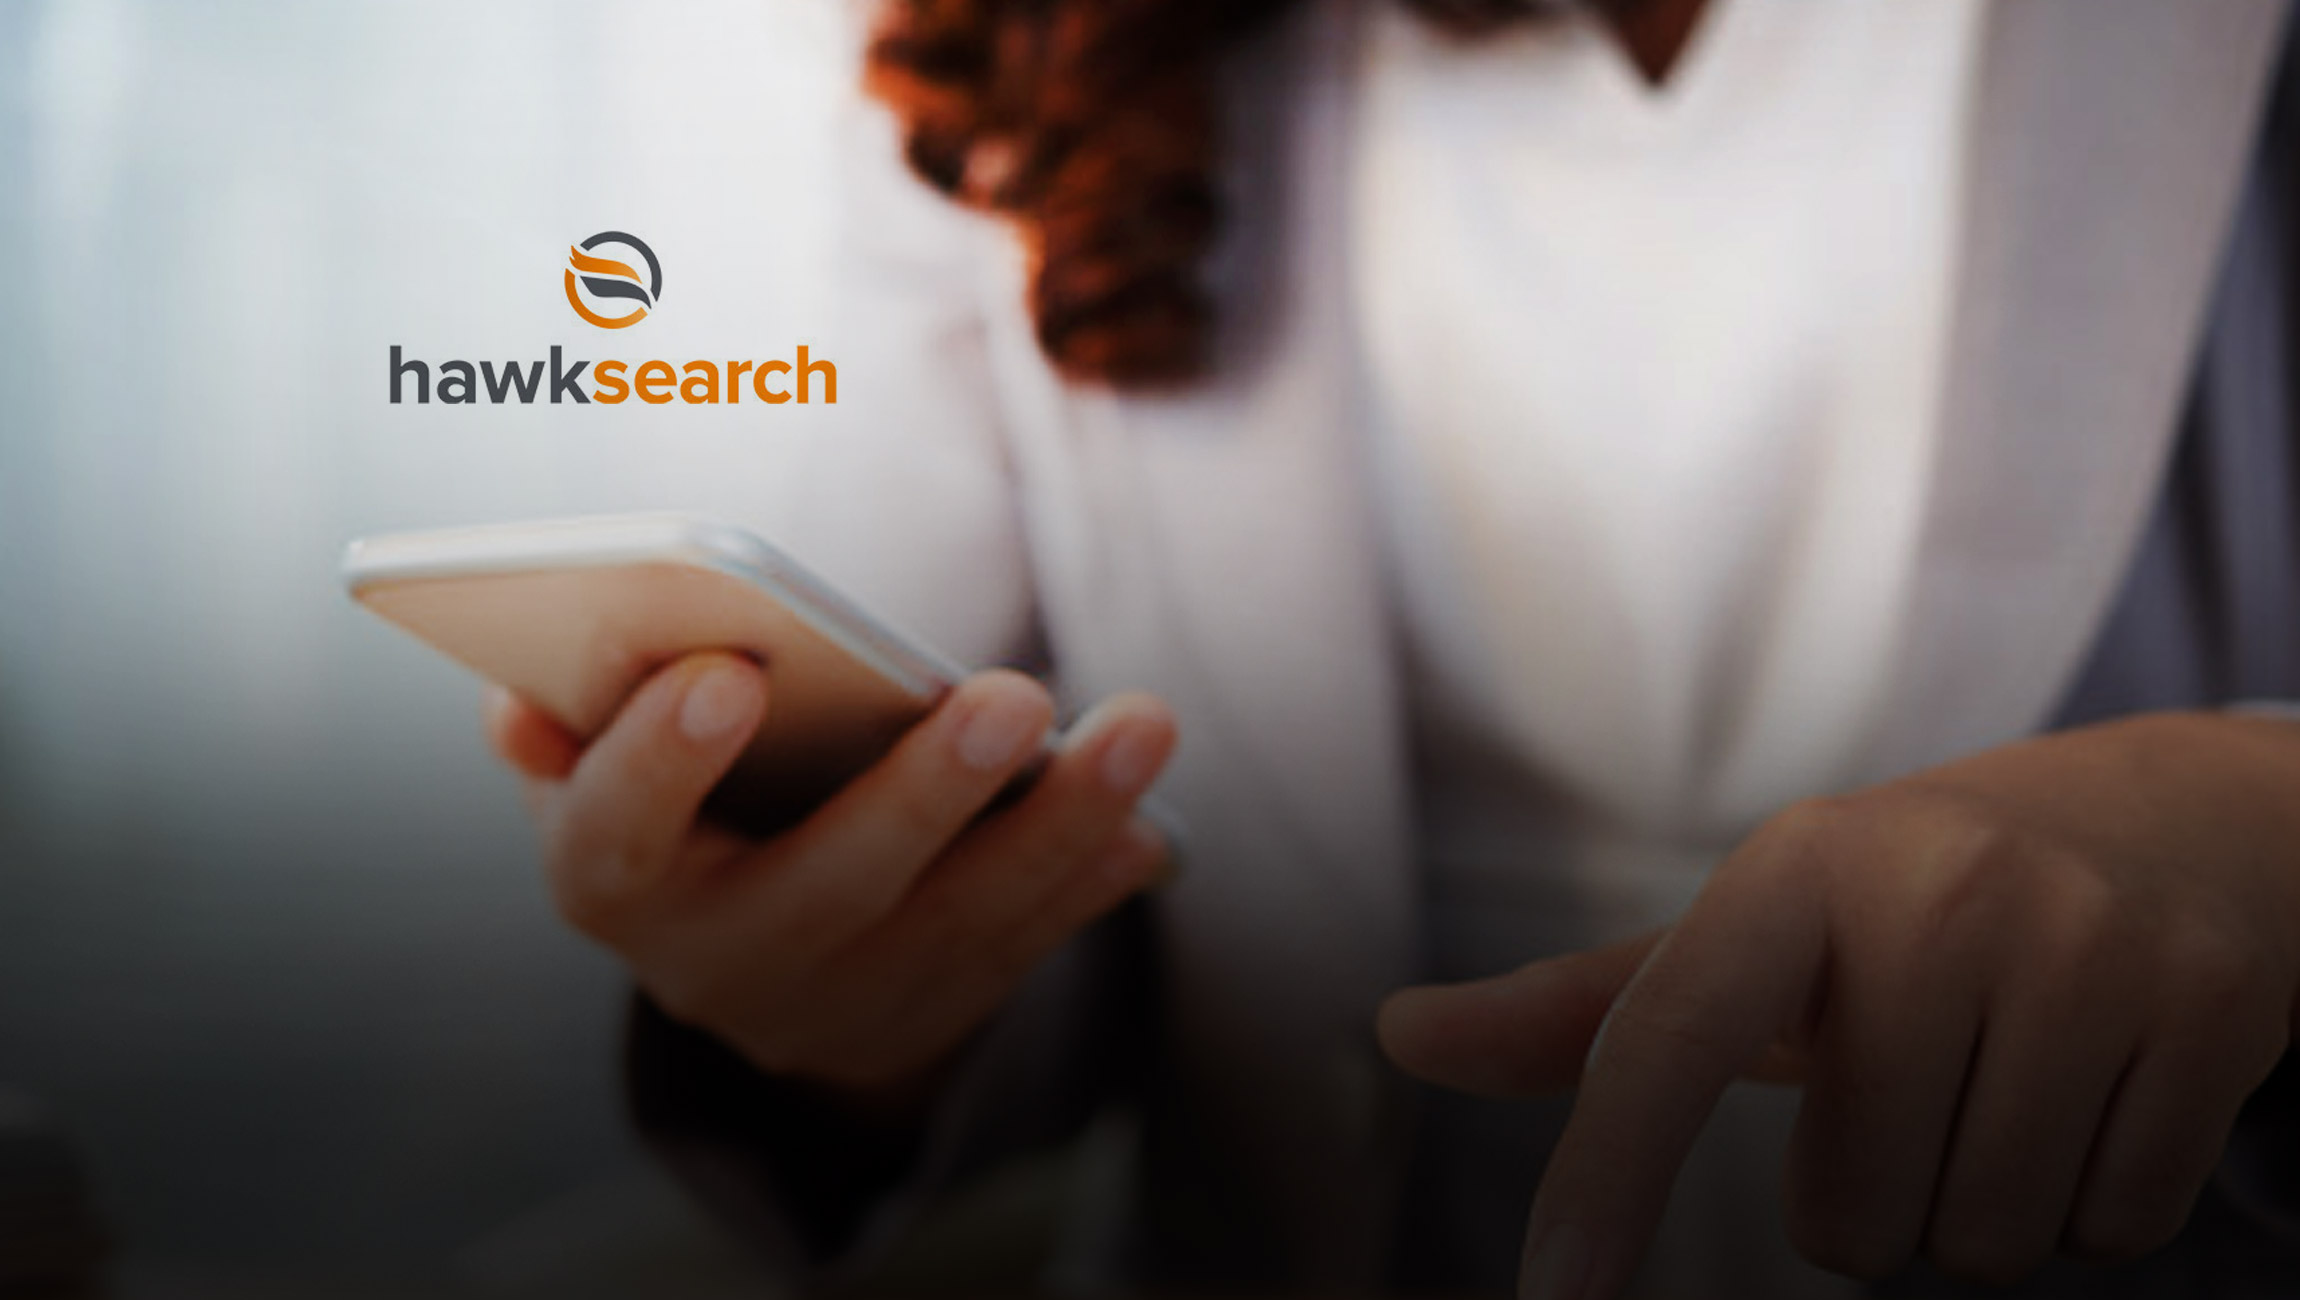 Hawksearch Introduces Groundbreaking Search Information Manager to Marketplace